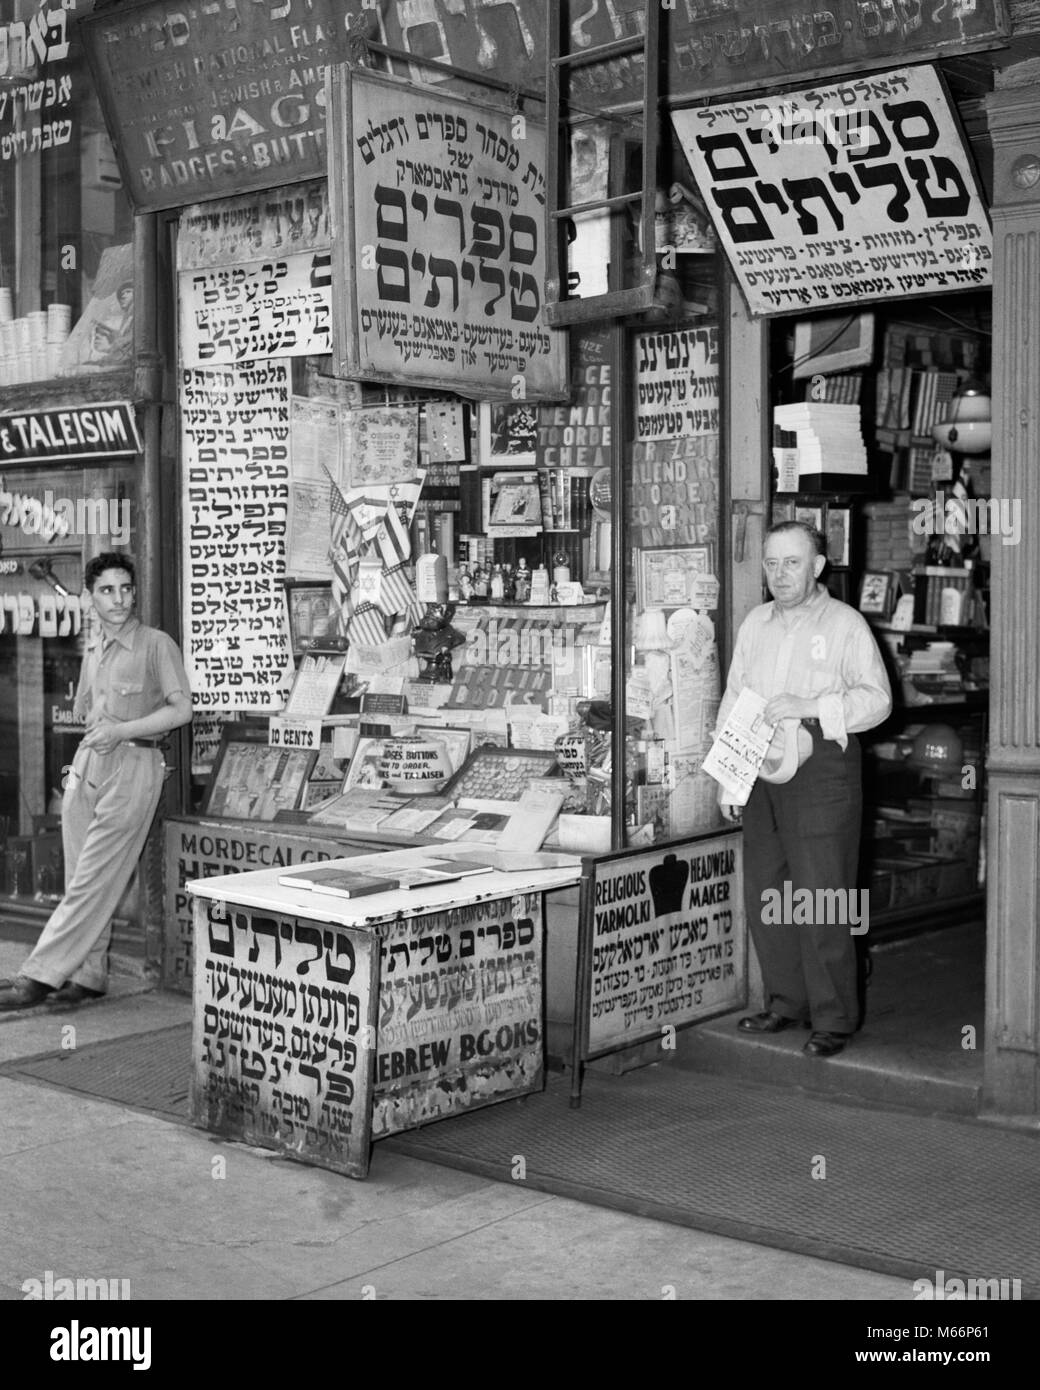 1940s LOWER EAST SIDE SHOP SIGN FOR FLAGS BOOKS BADGES BUTTON IN YIDDISH HEBREW ALPHABET MANHATTAN NEW YORK CITY - Stock Image